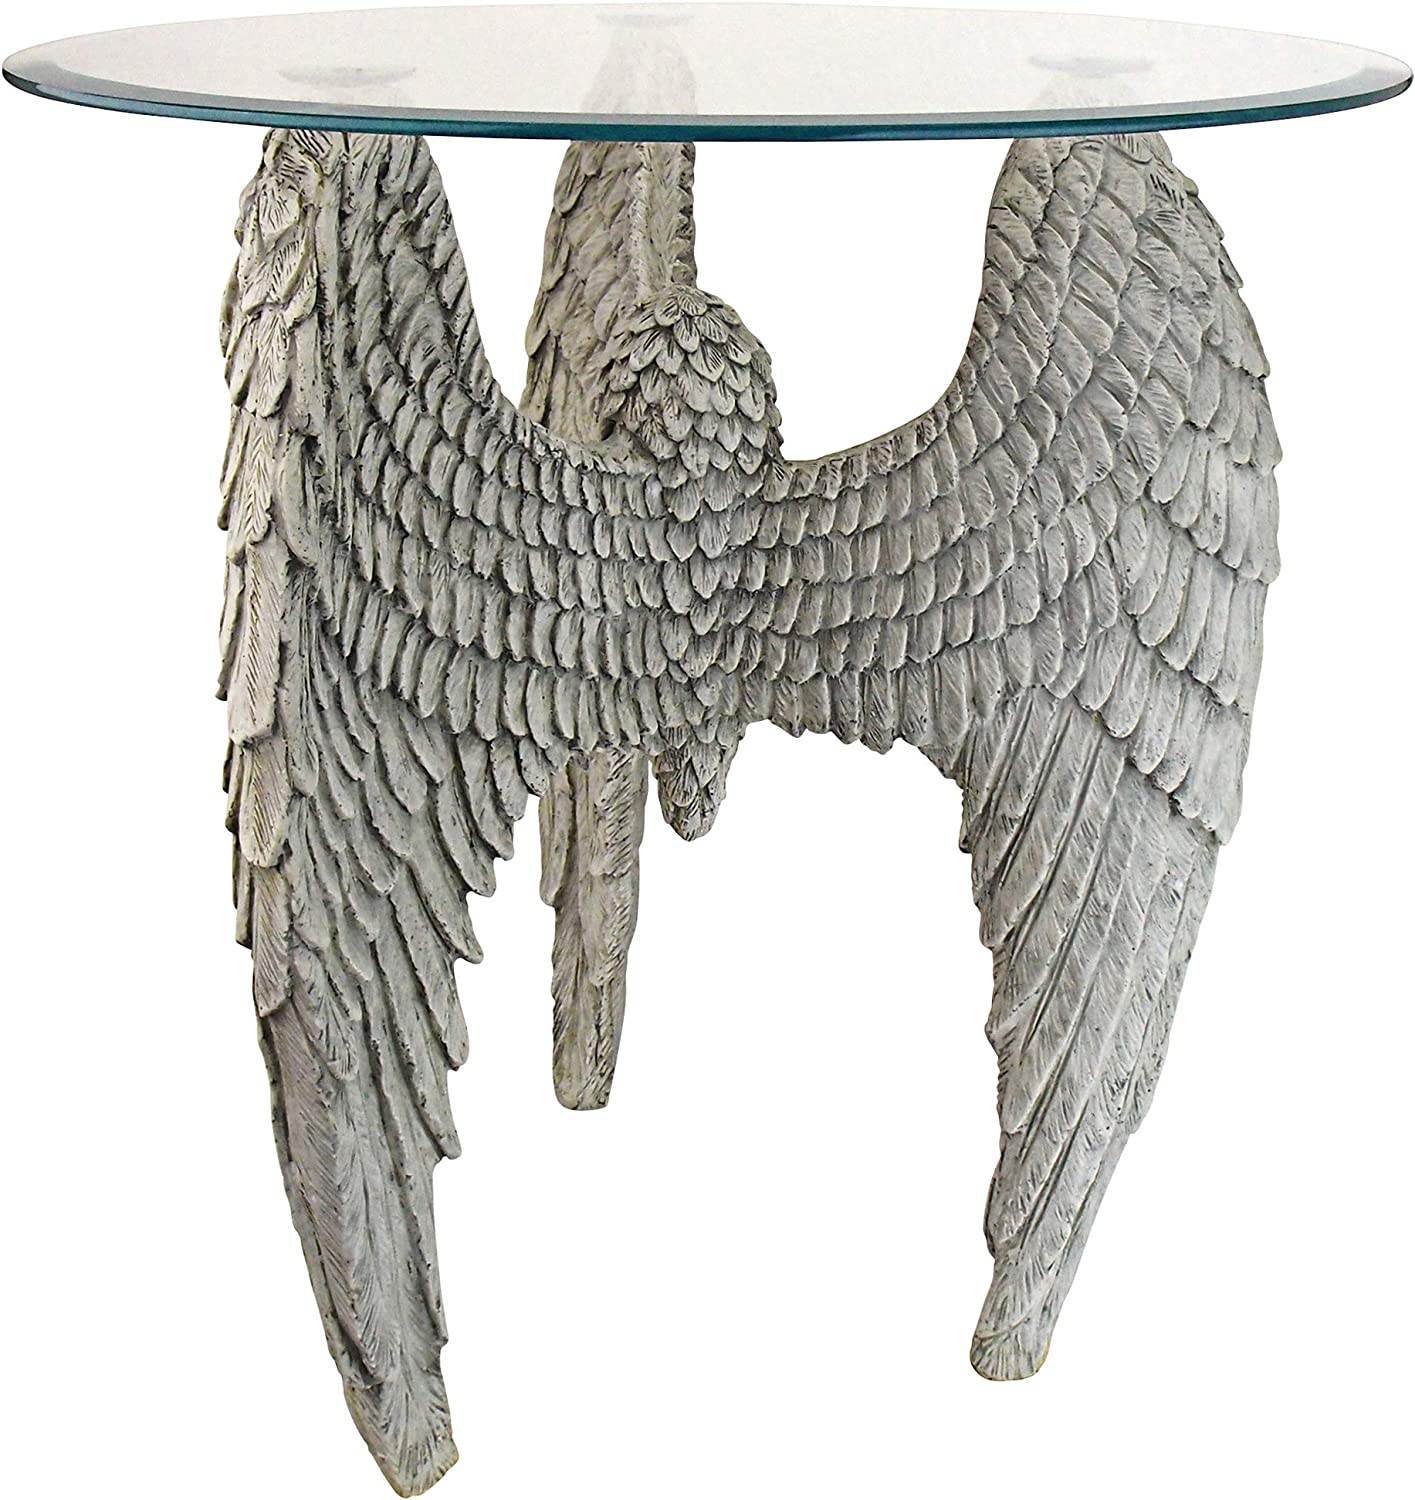 Design Toscano Angel Wings at Our Feet Glass-Topped Sculptural Table by artist Evelyn Myers Hartley, 21.5 Inches, antique stone